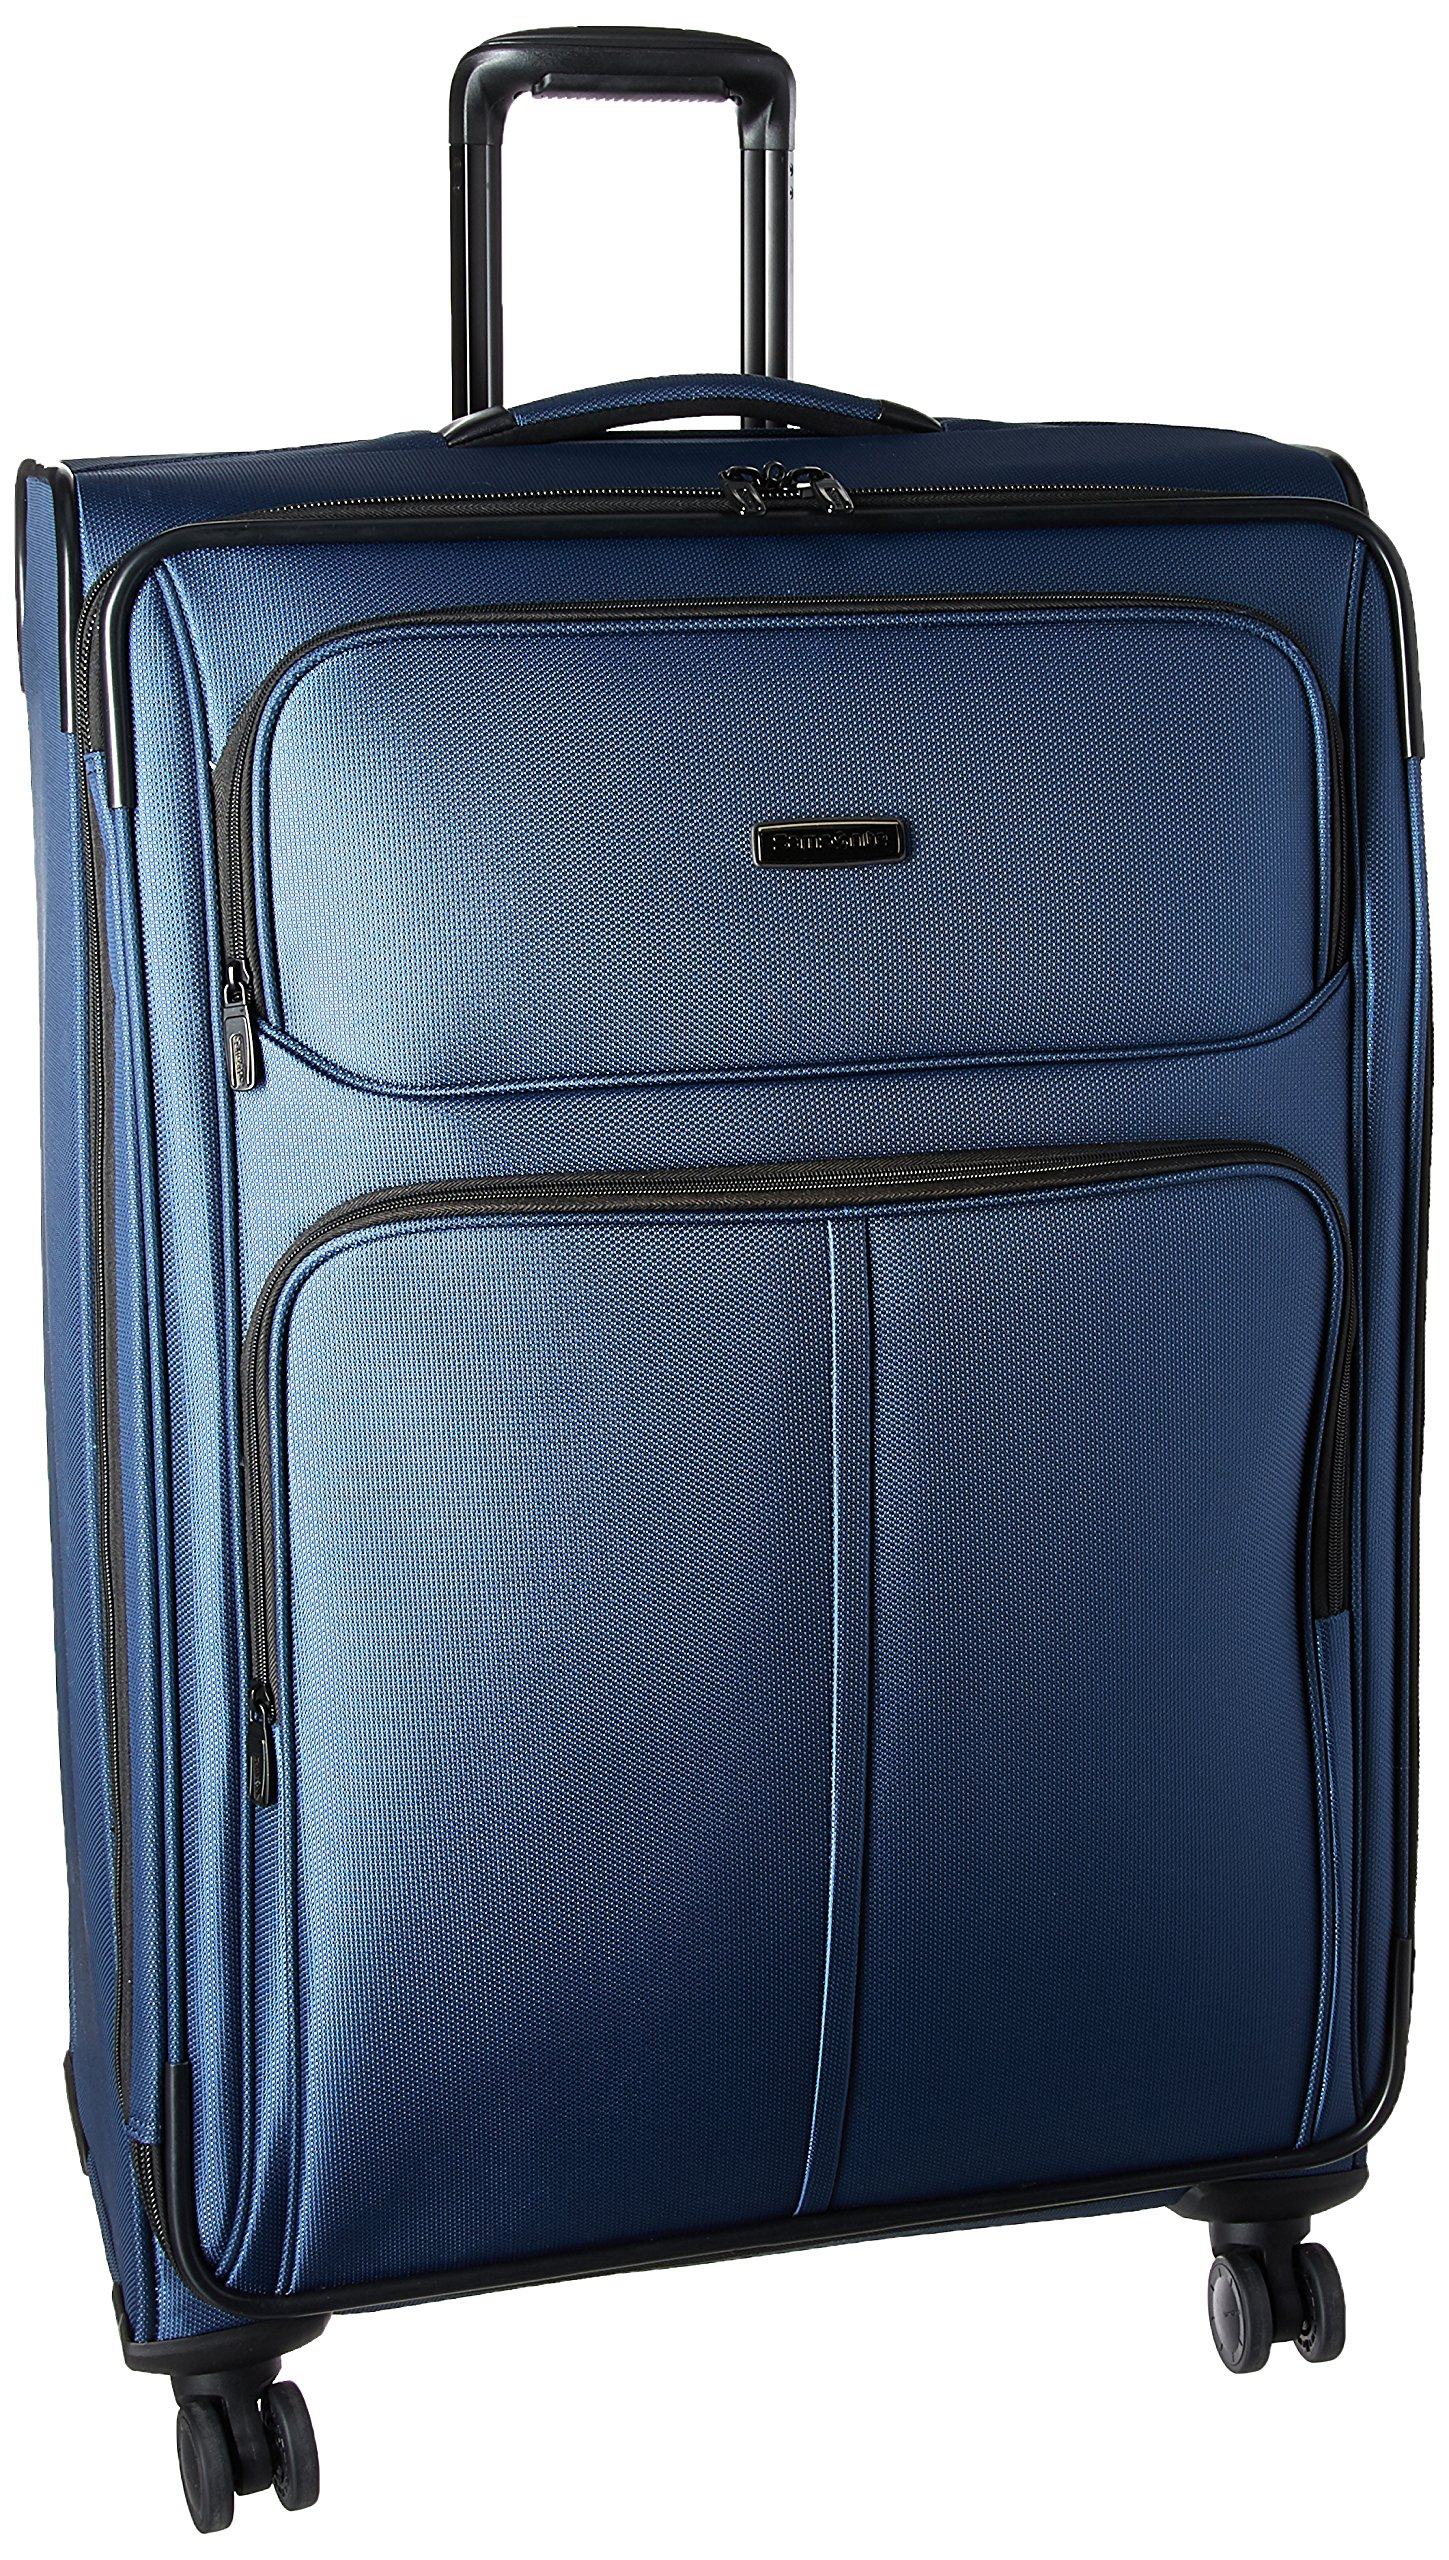 Samsonite Leverage LTE Expandable Softside Checked Luggage with Spinner Wheels, 29 Inch, Poseidon Blue